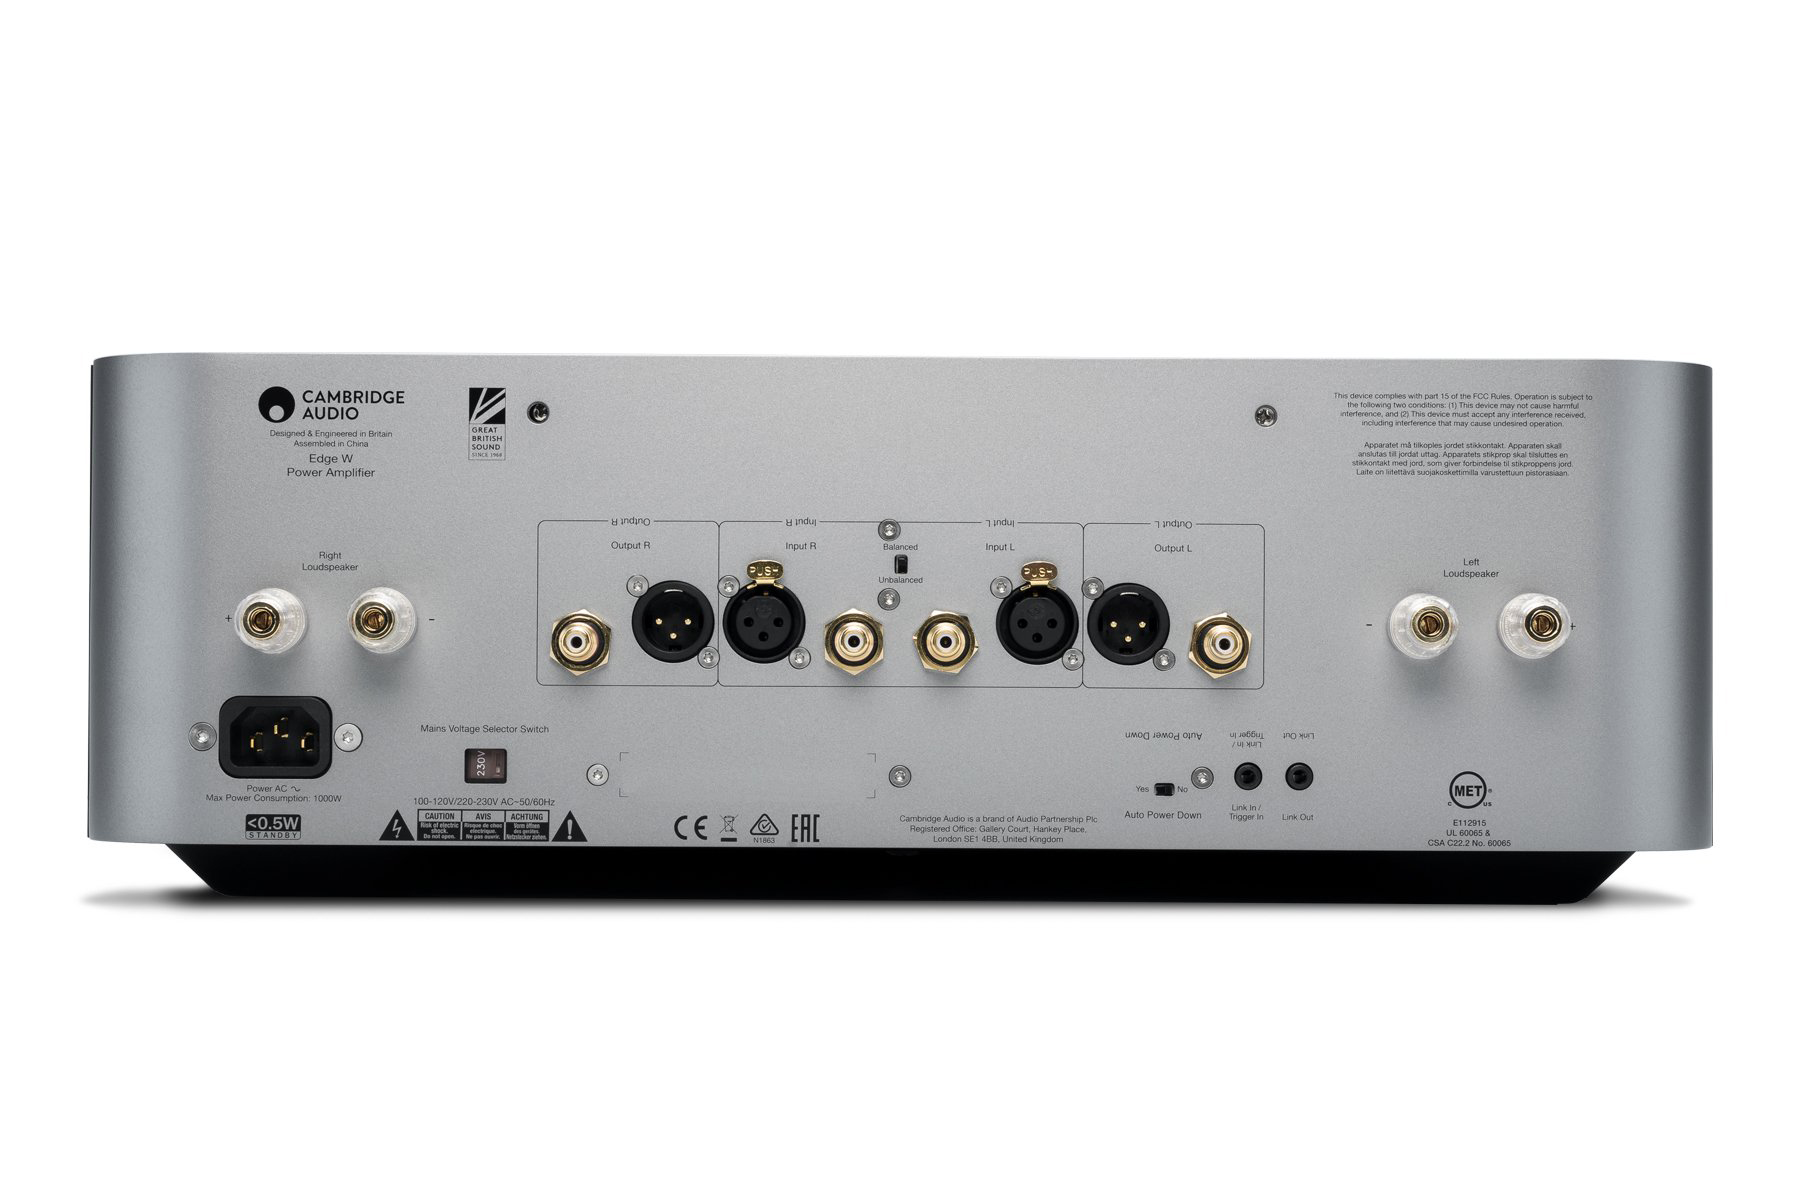 Cambridge Audio Edge W zadnja